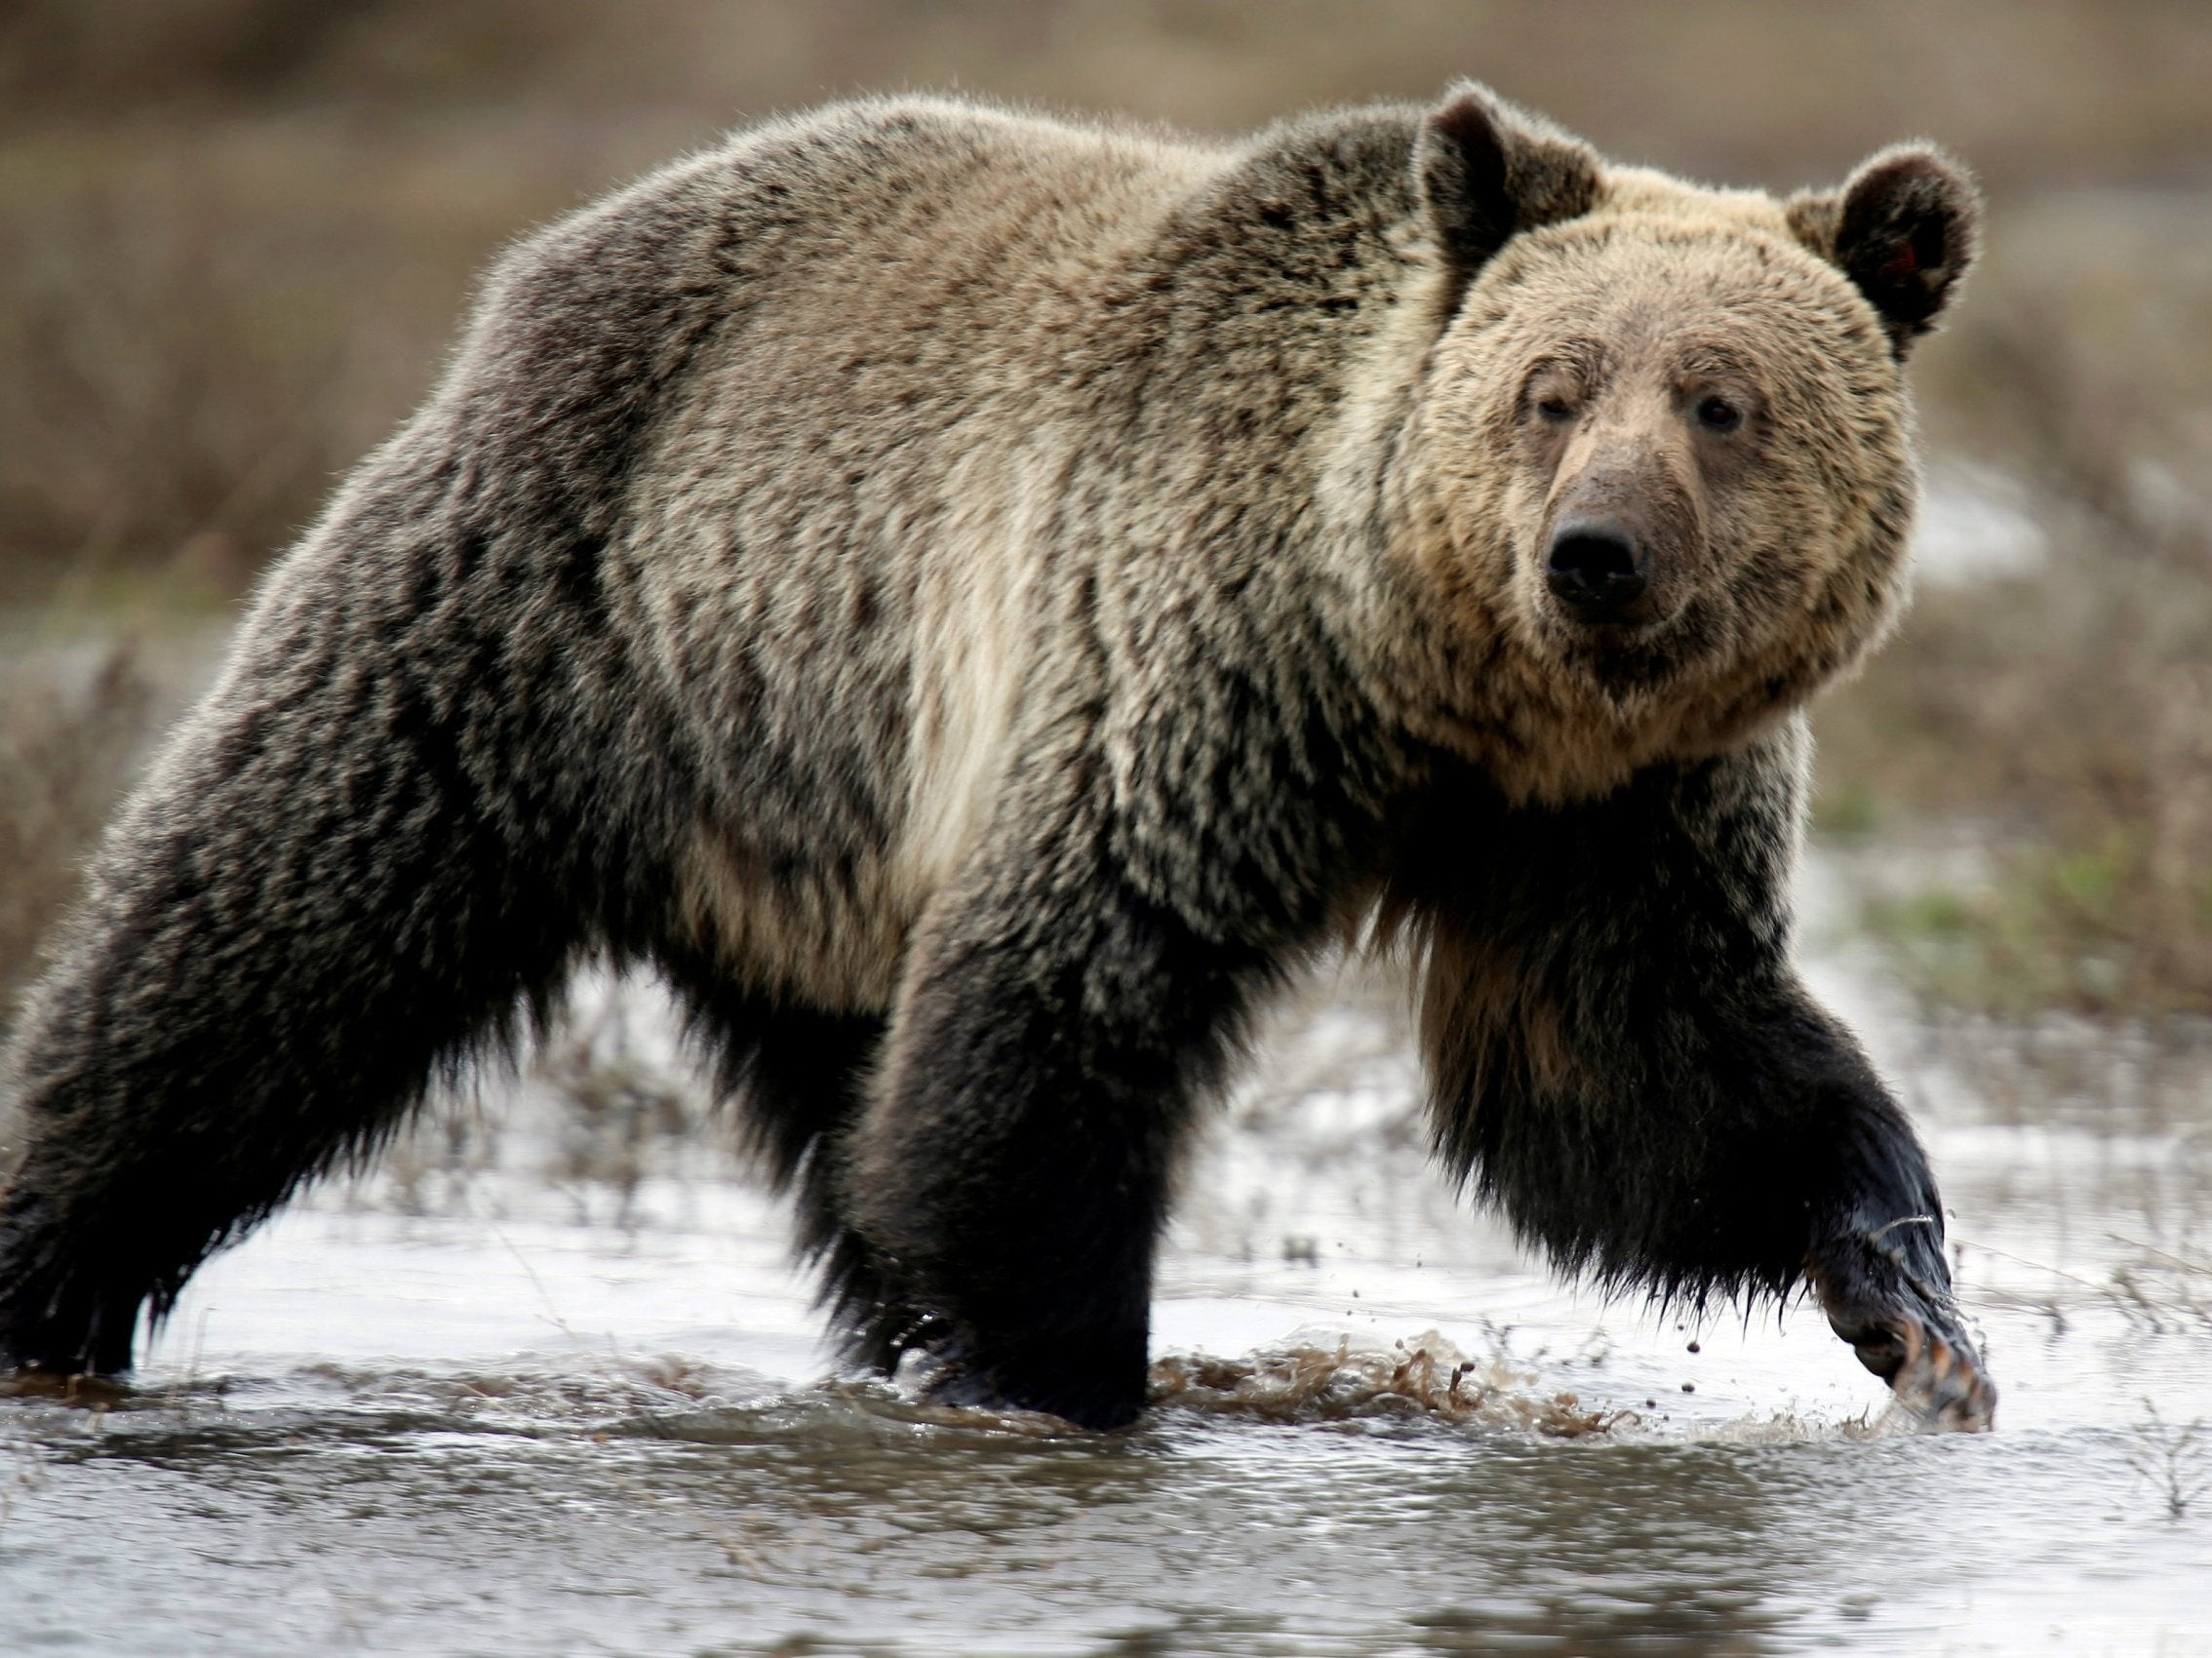 Grizzly bear - latest news, breaking stories and comment